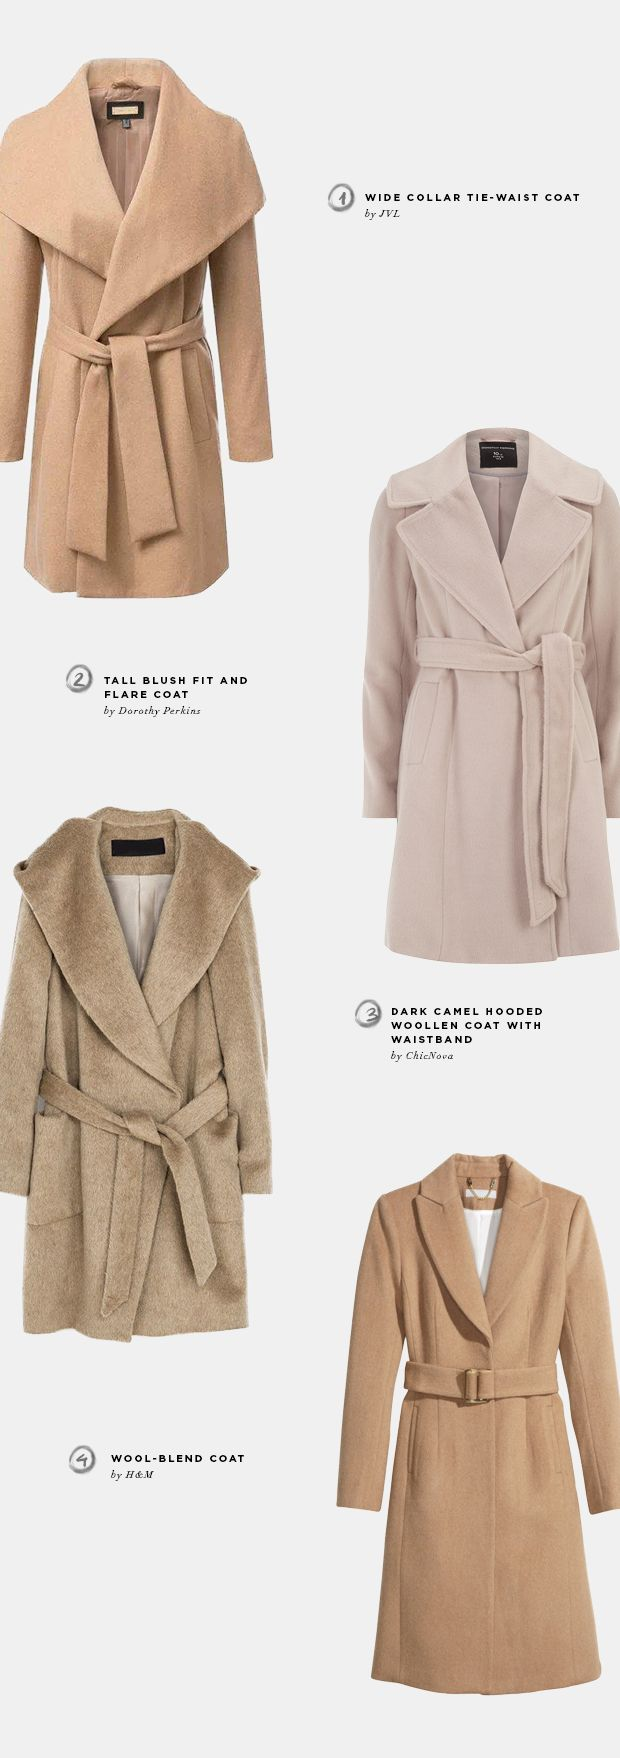 affordable winter coats, chic nova, h&m, uniqlo, tweed, parka, camel, modcloth, bold colored coats, winter coat trends 2014, outerwear trends, JVL, duffle coats, long coats, hooded parka trends 2014, joe fresh, zara, printed coats, mango, wrap coats, dorothy perkins, blush coats, beige coats, wool-blend coats